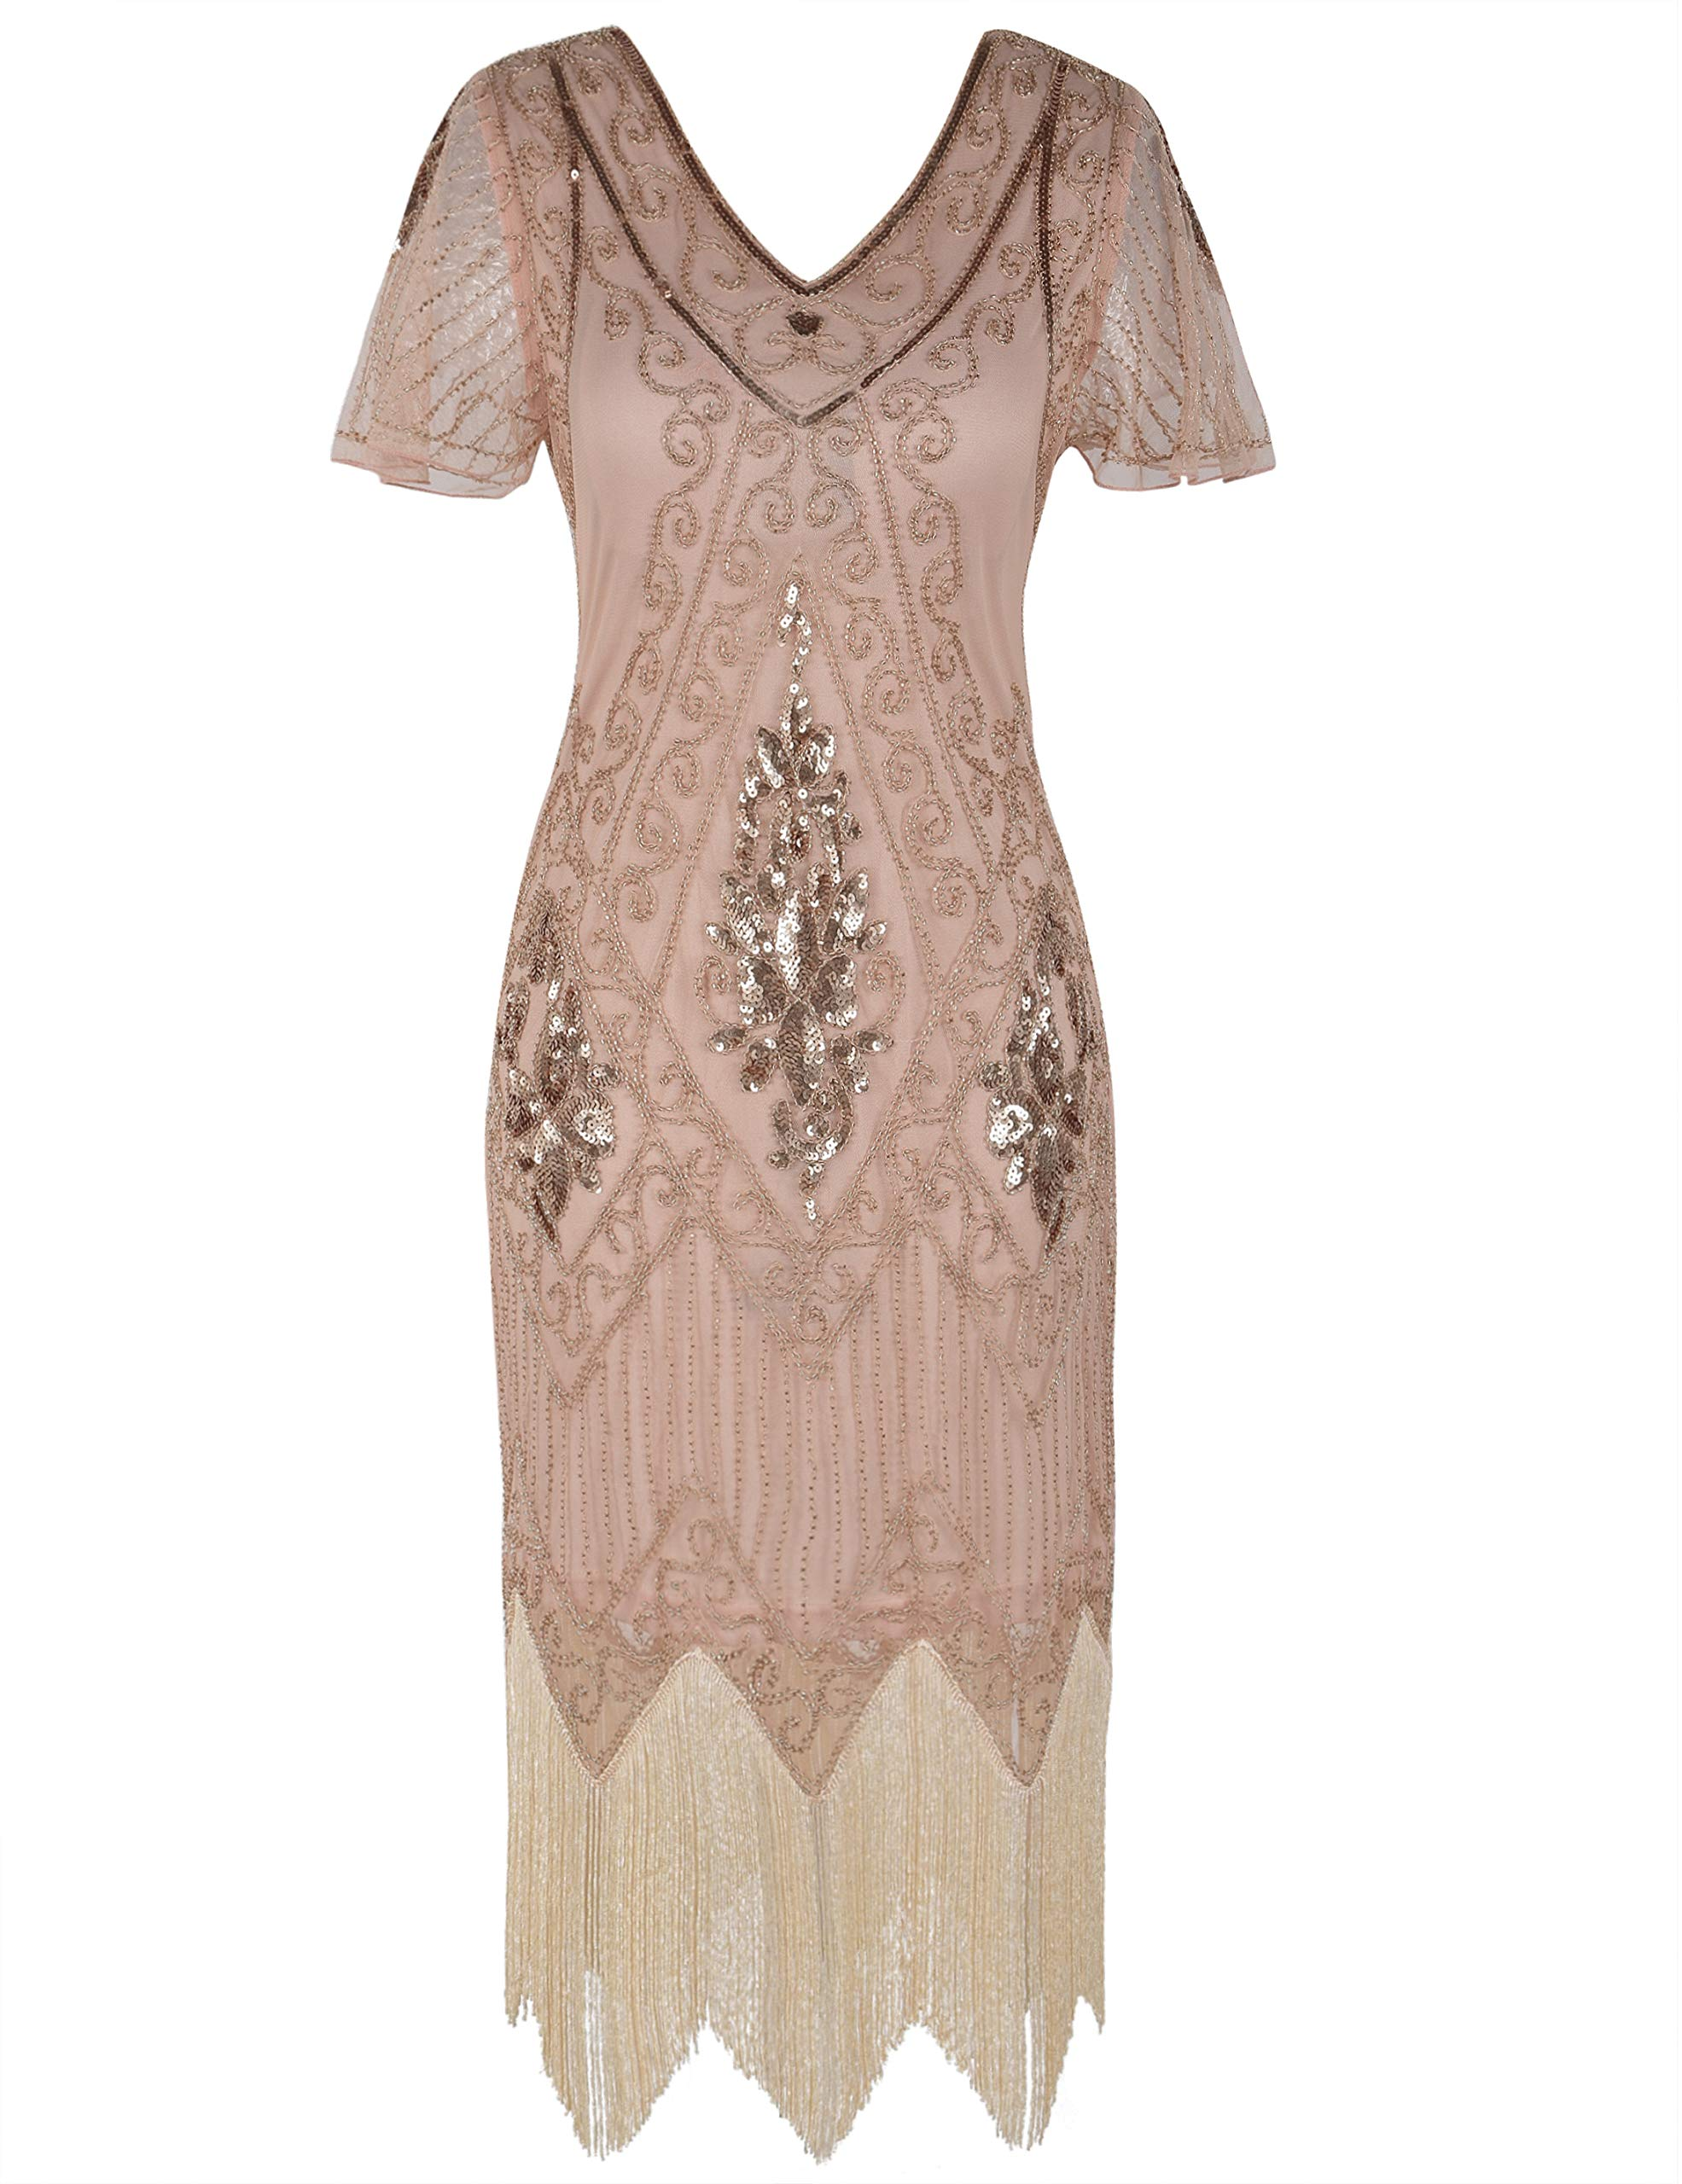 Mother Of The Bride Dresses - Women's 1920s Dress Sequin Art Deco Flapper Dress With Sleeve